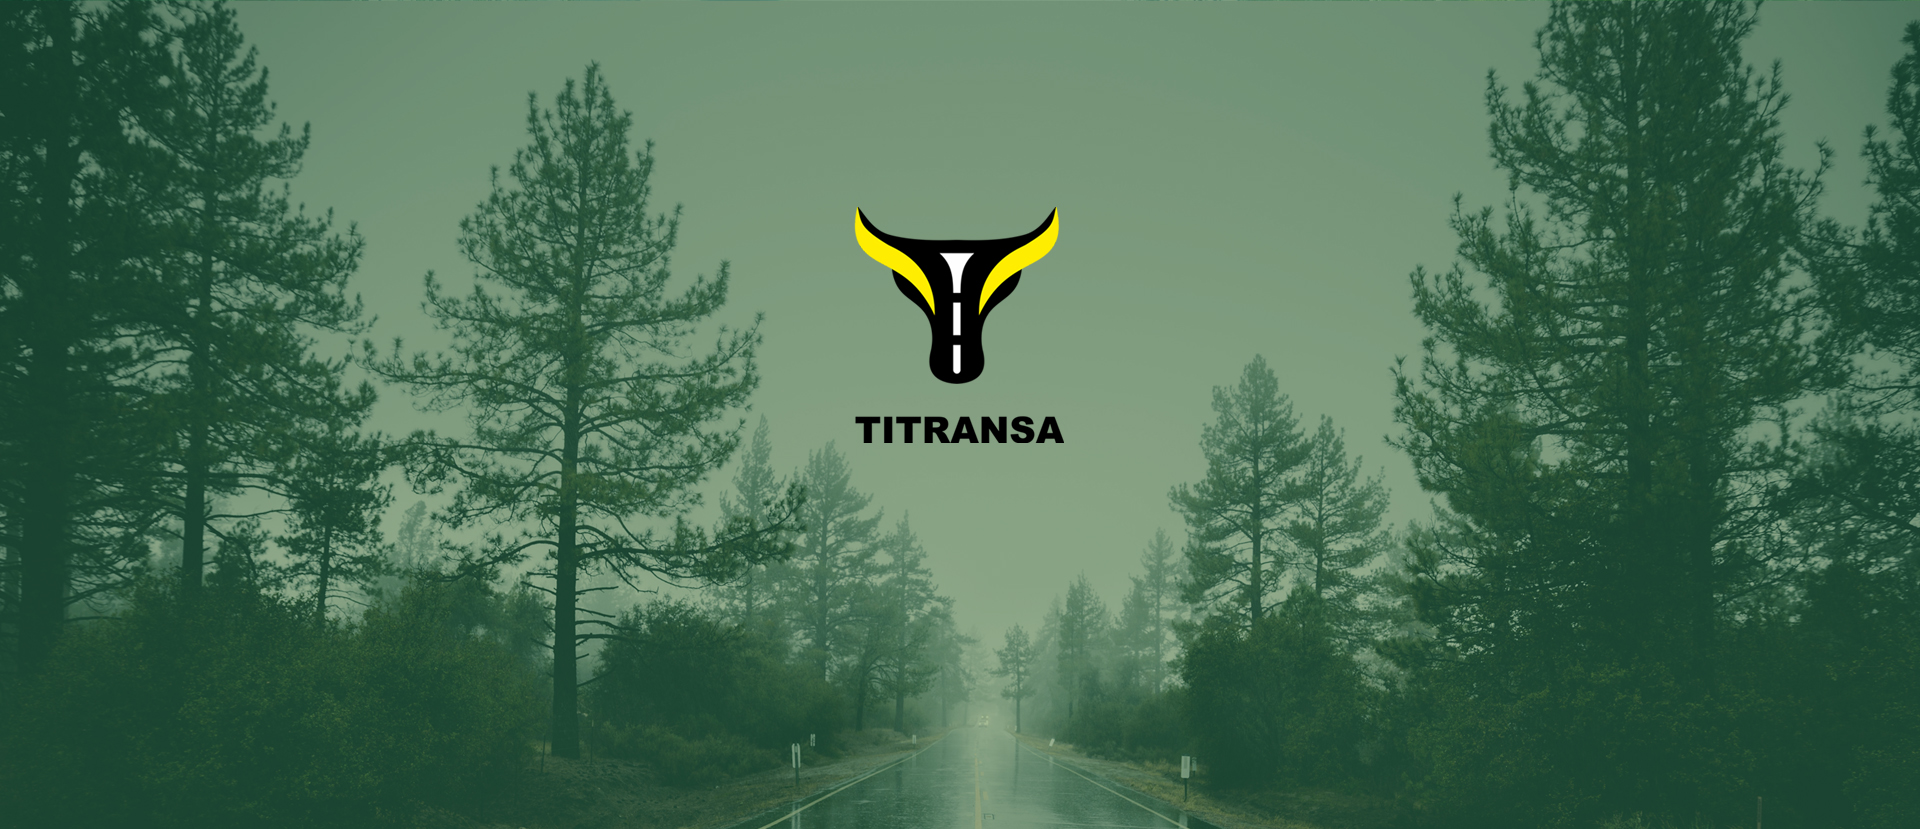 Titransa logo created by margos bites